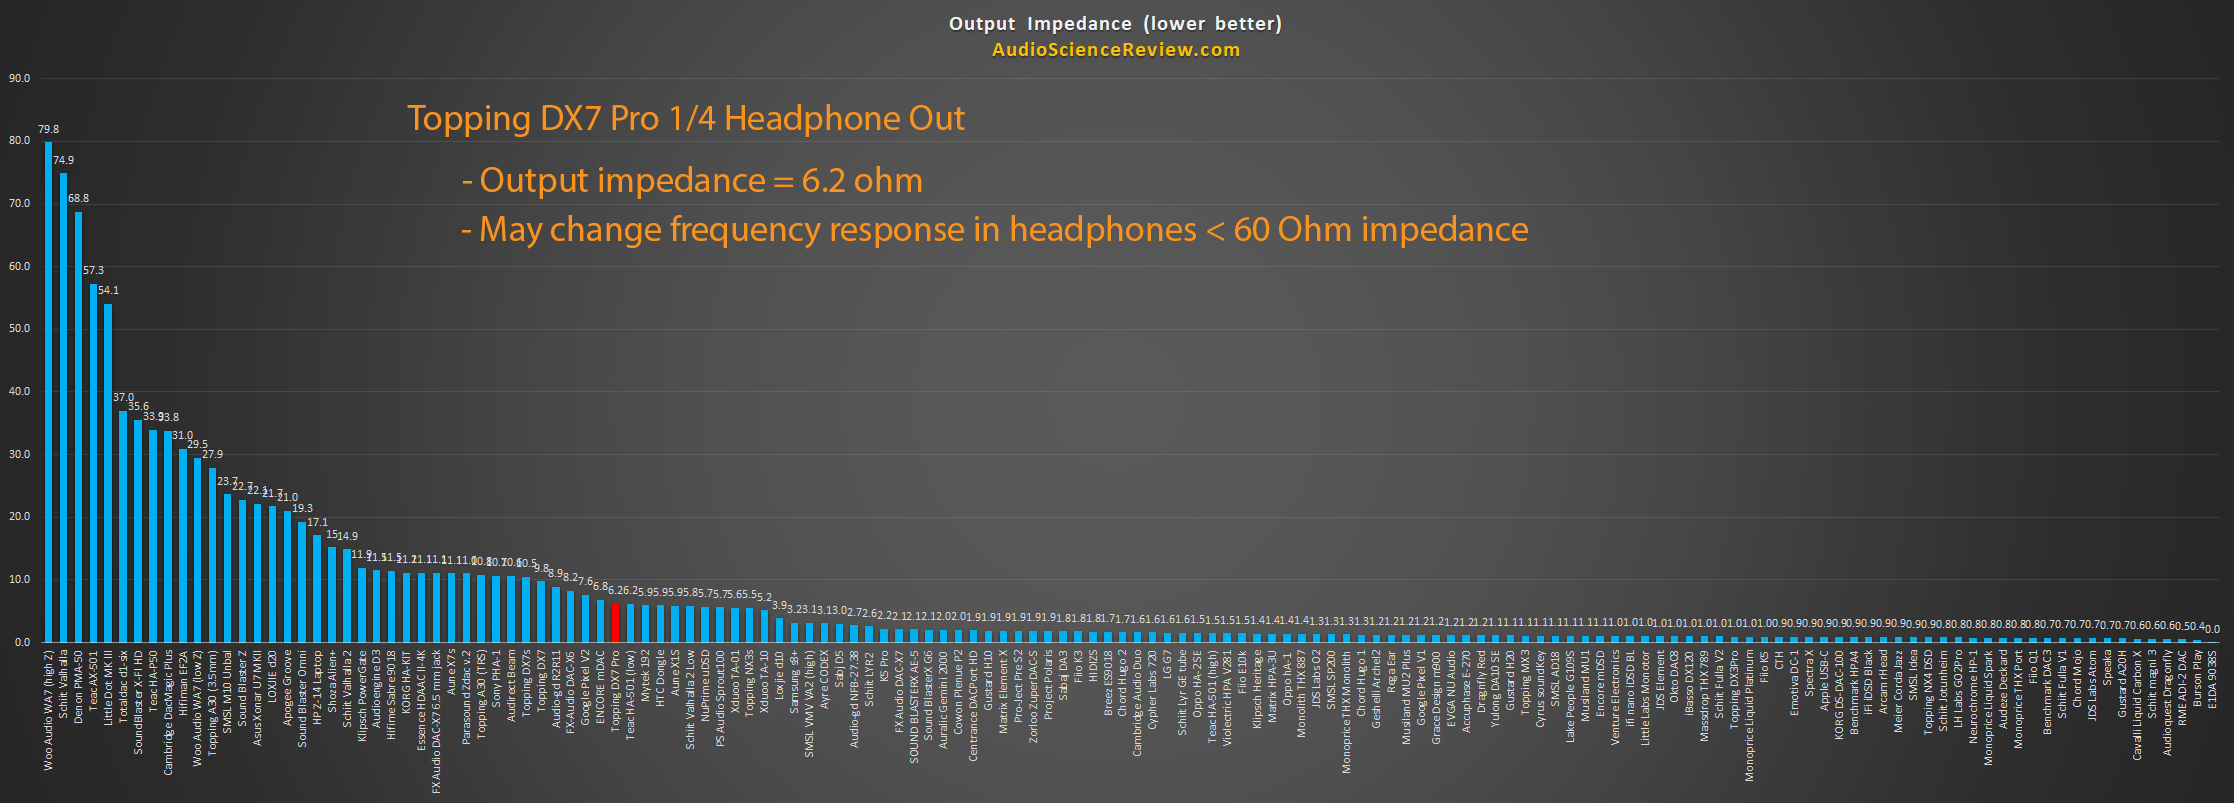 Headphone Amplifier Impedance Measurements.png